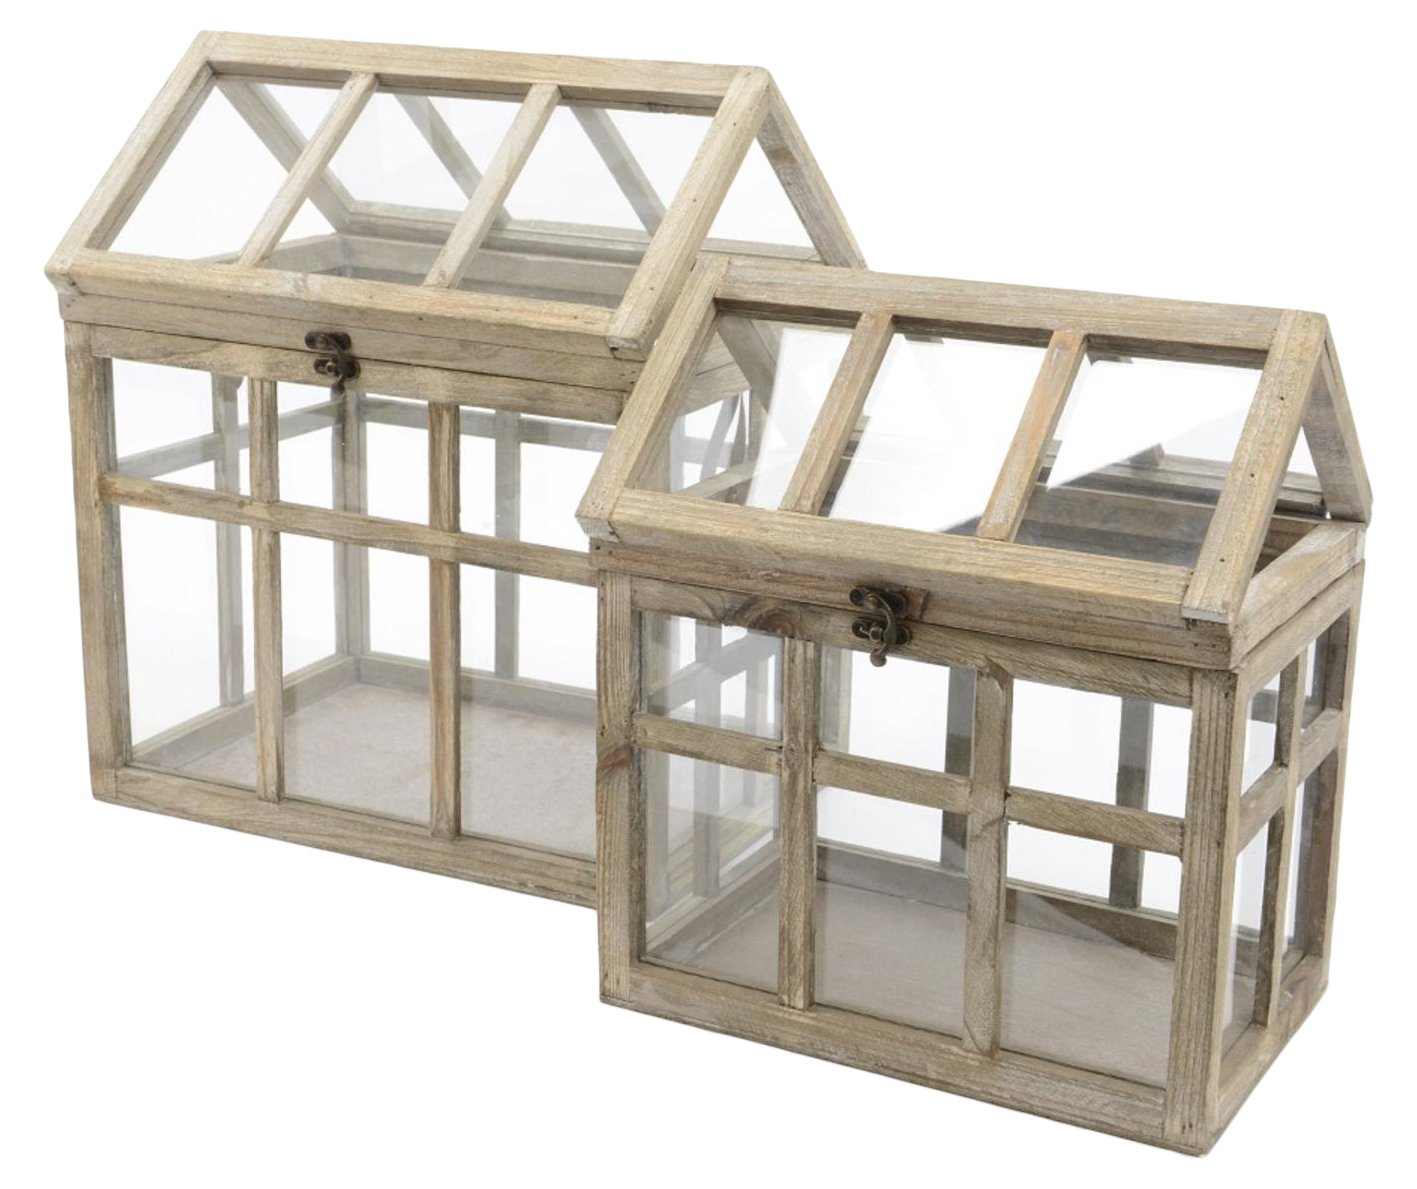 Kaemingk Set of 2 French Countryside Distressed Tan Natural Wood Terrarium Greenhouses 16.5''